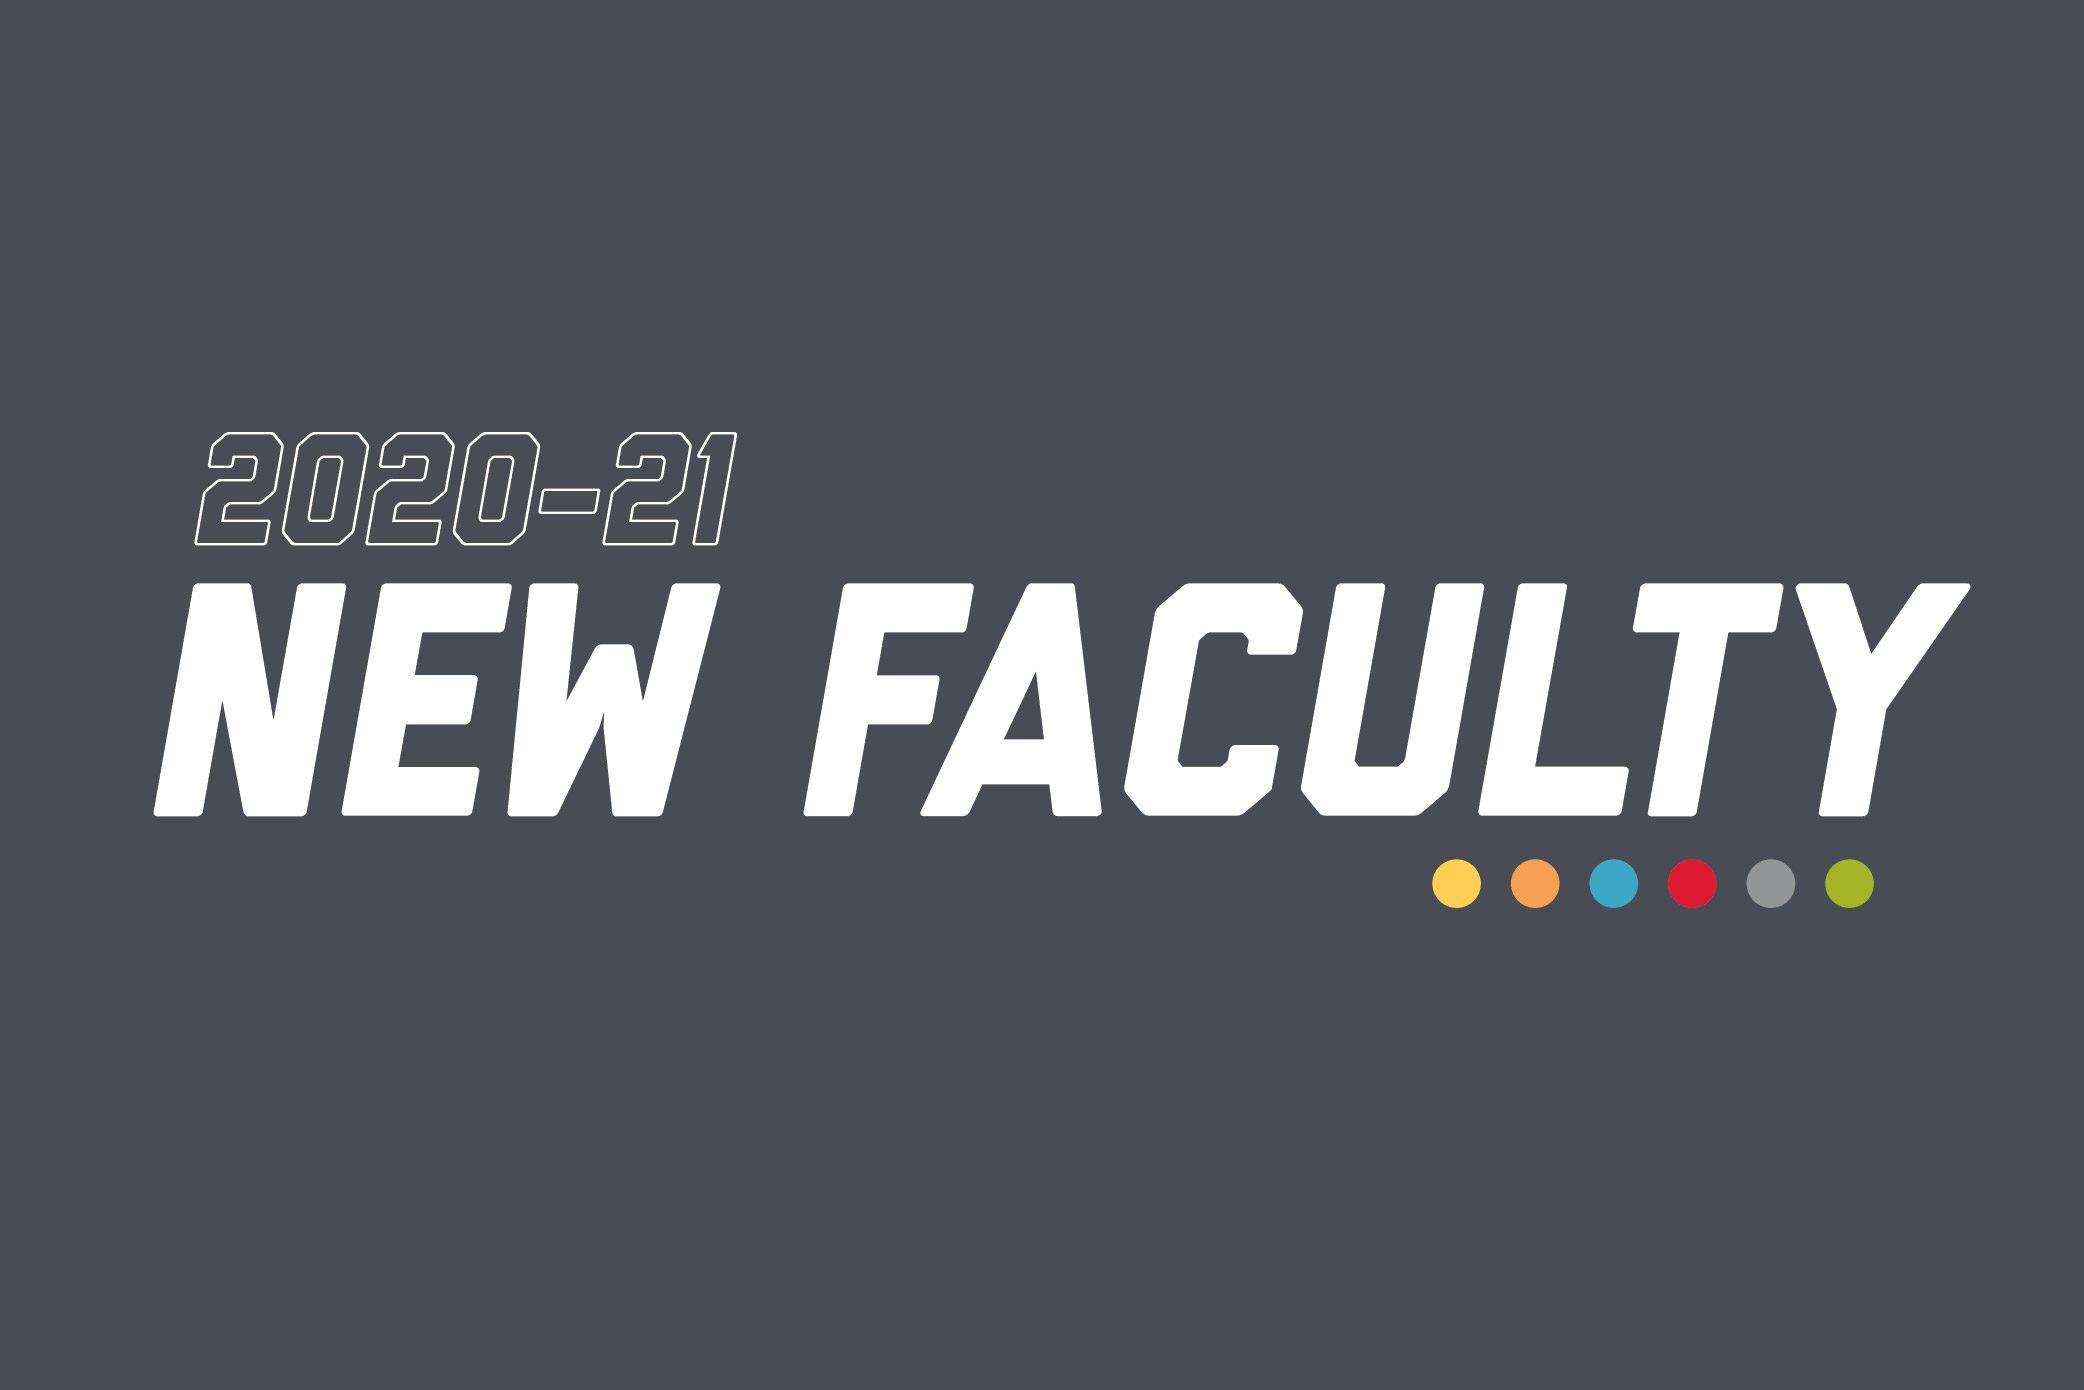 The College of Engineering welcomes 13 new faculty for the 2020-21 academic year.